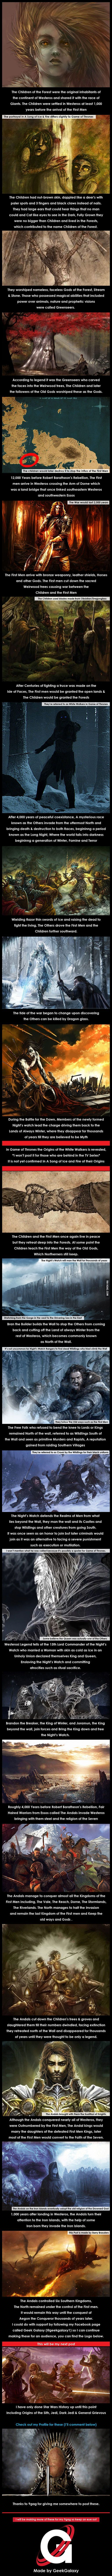 Early Westeros History (Game of thrones / A song of Ice and Fire)